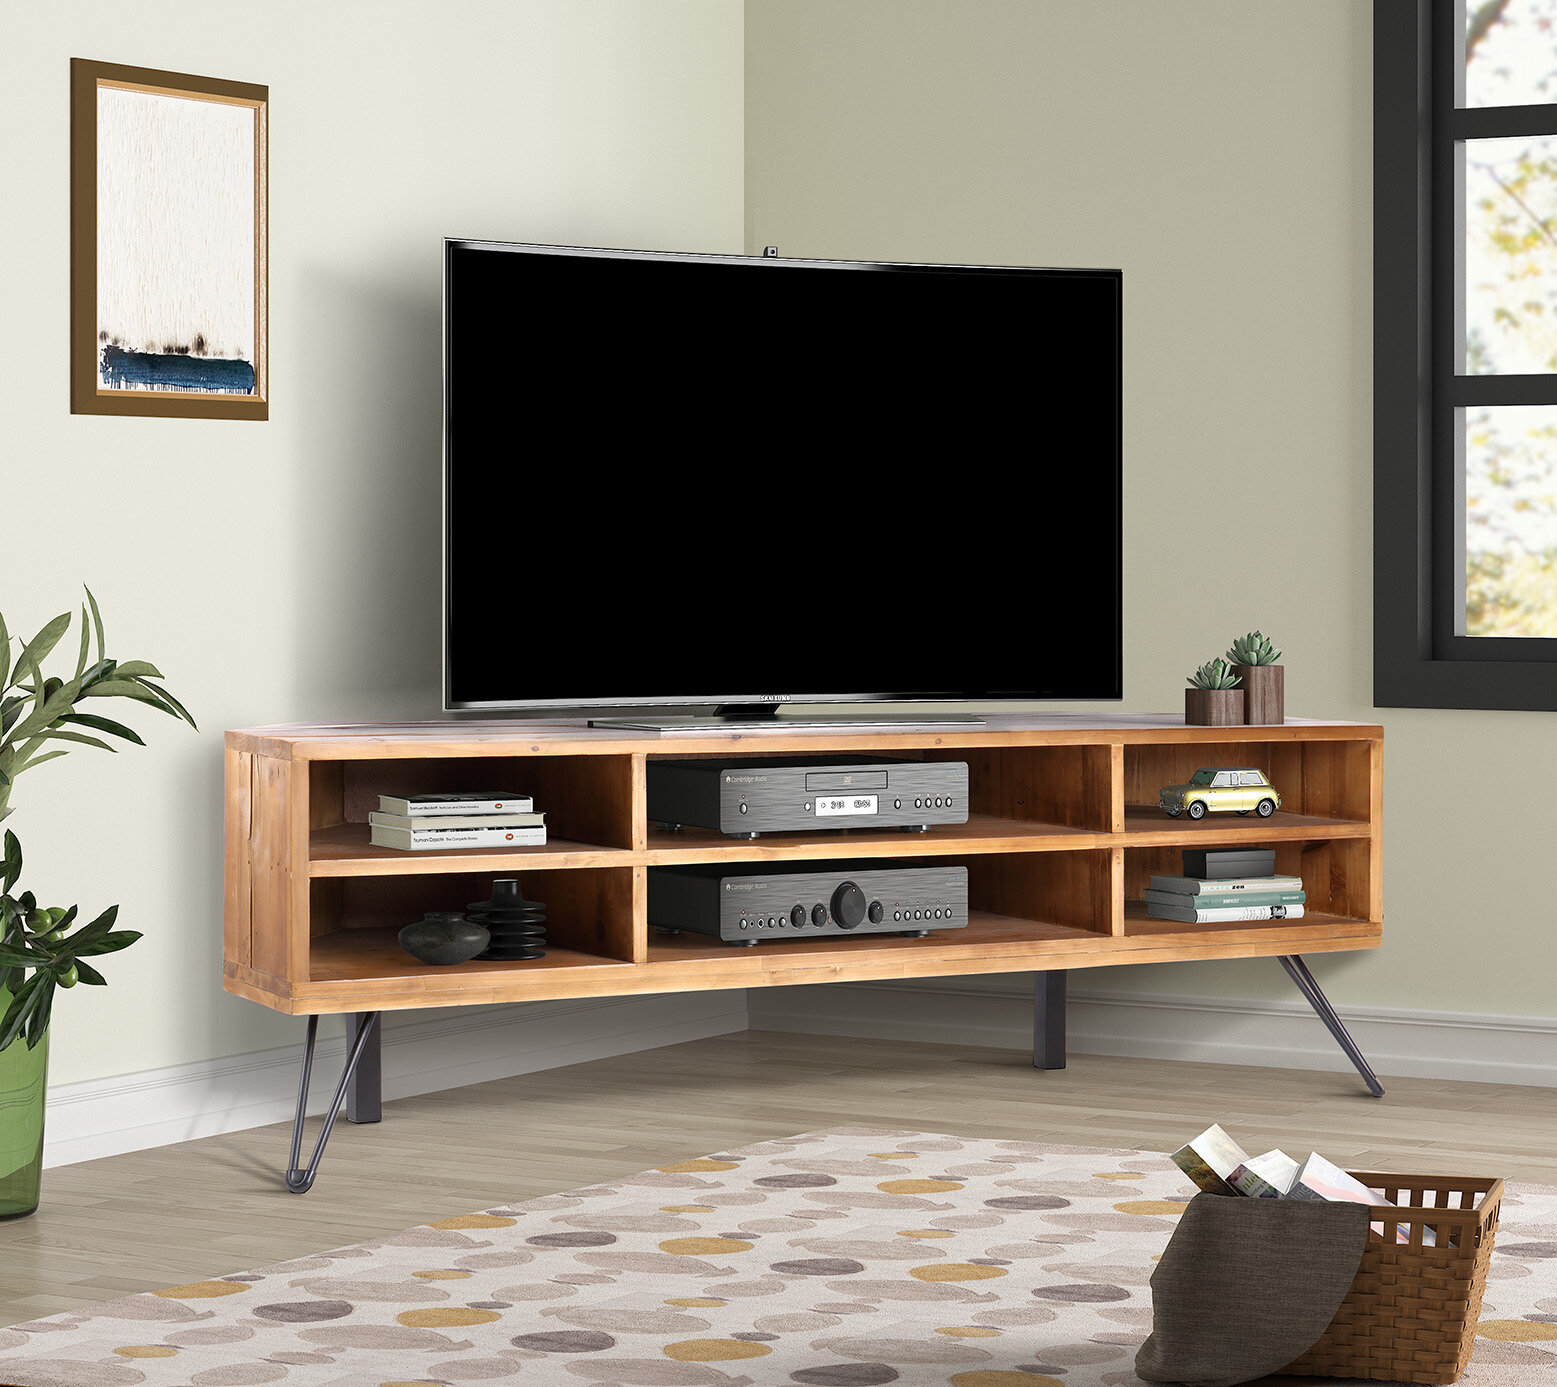 Foundry Select Antonetta Solid Wood Corner Tv Stand For Tvs Up To 52 Reviews Wayfair